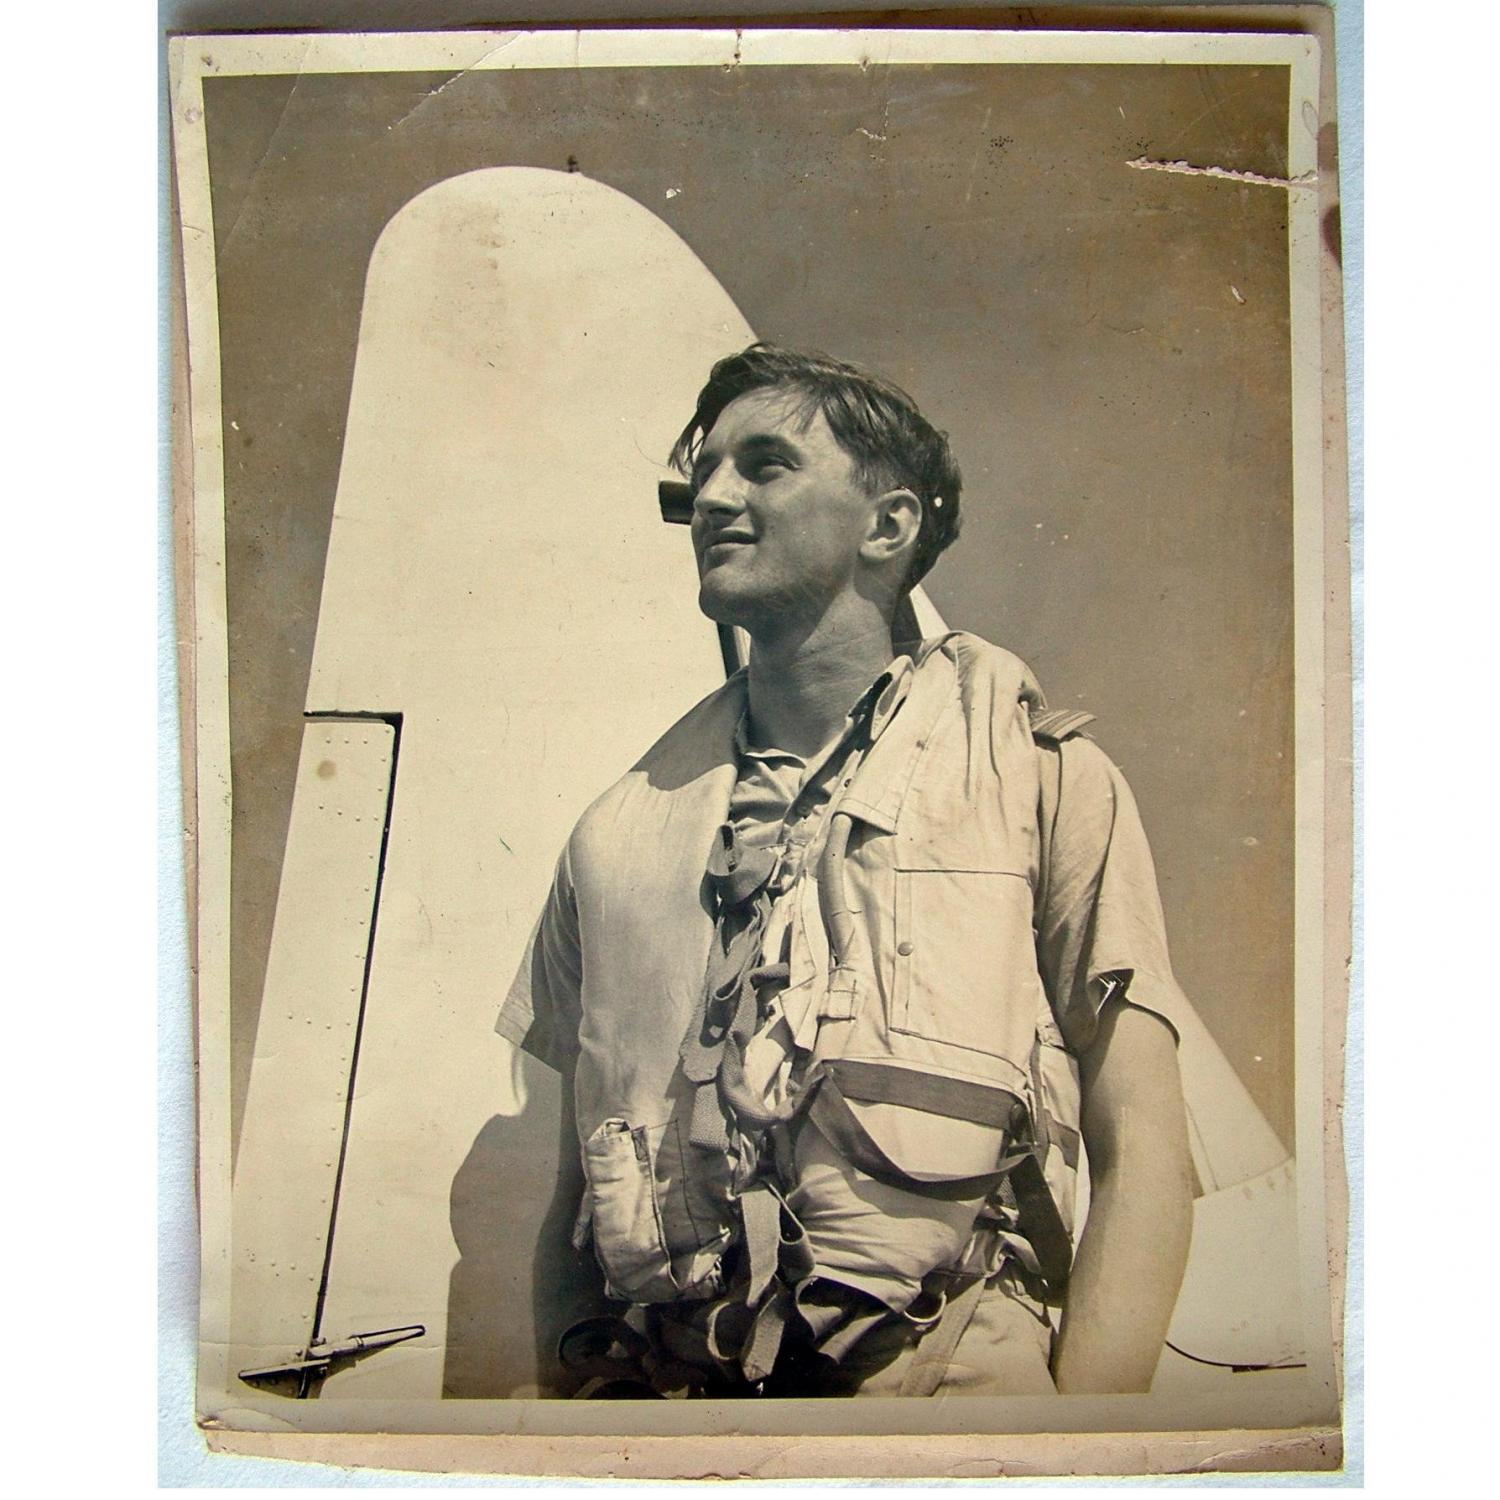 Photo - RAF Airman In Mae West